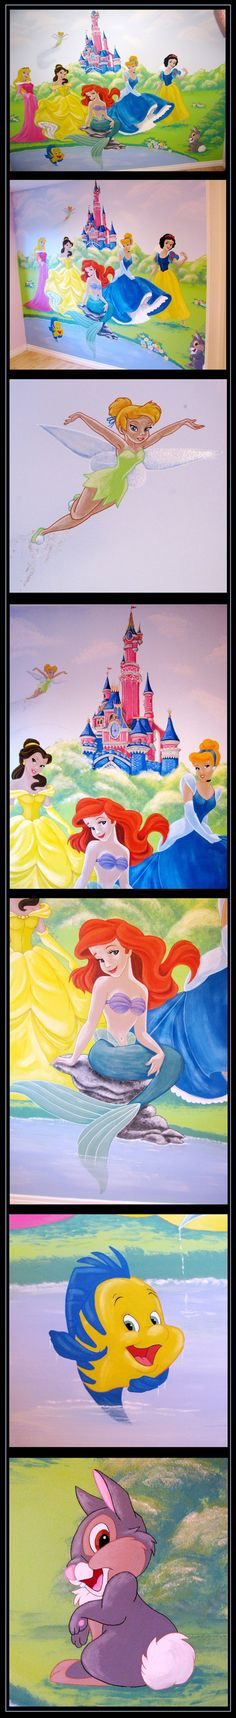 Disney mural on pinterest disney rooms disney wall for Disney princess ballroom mural